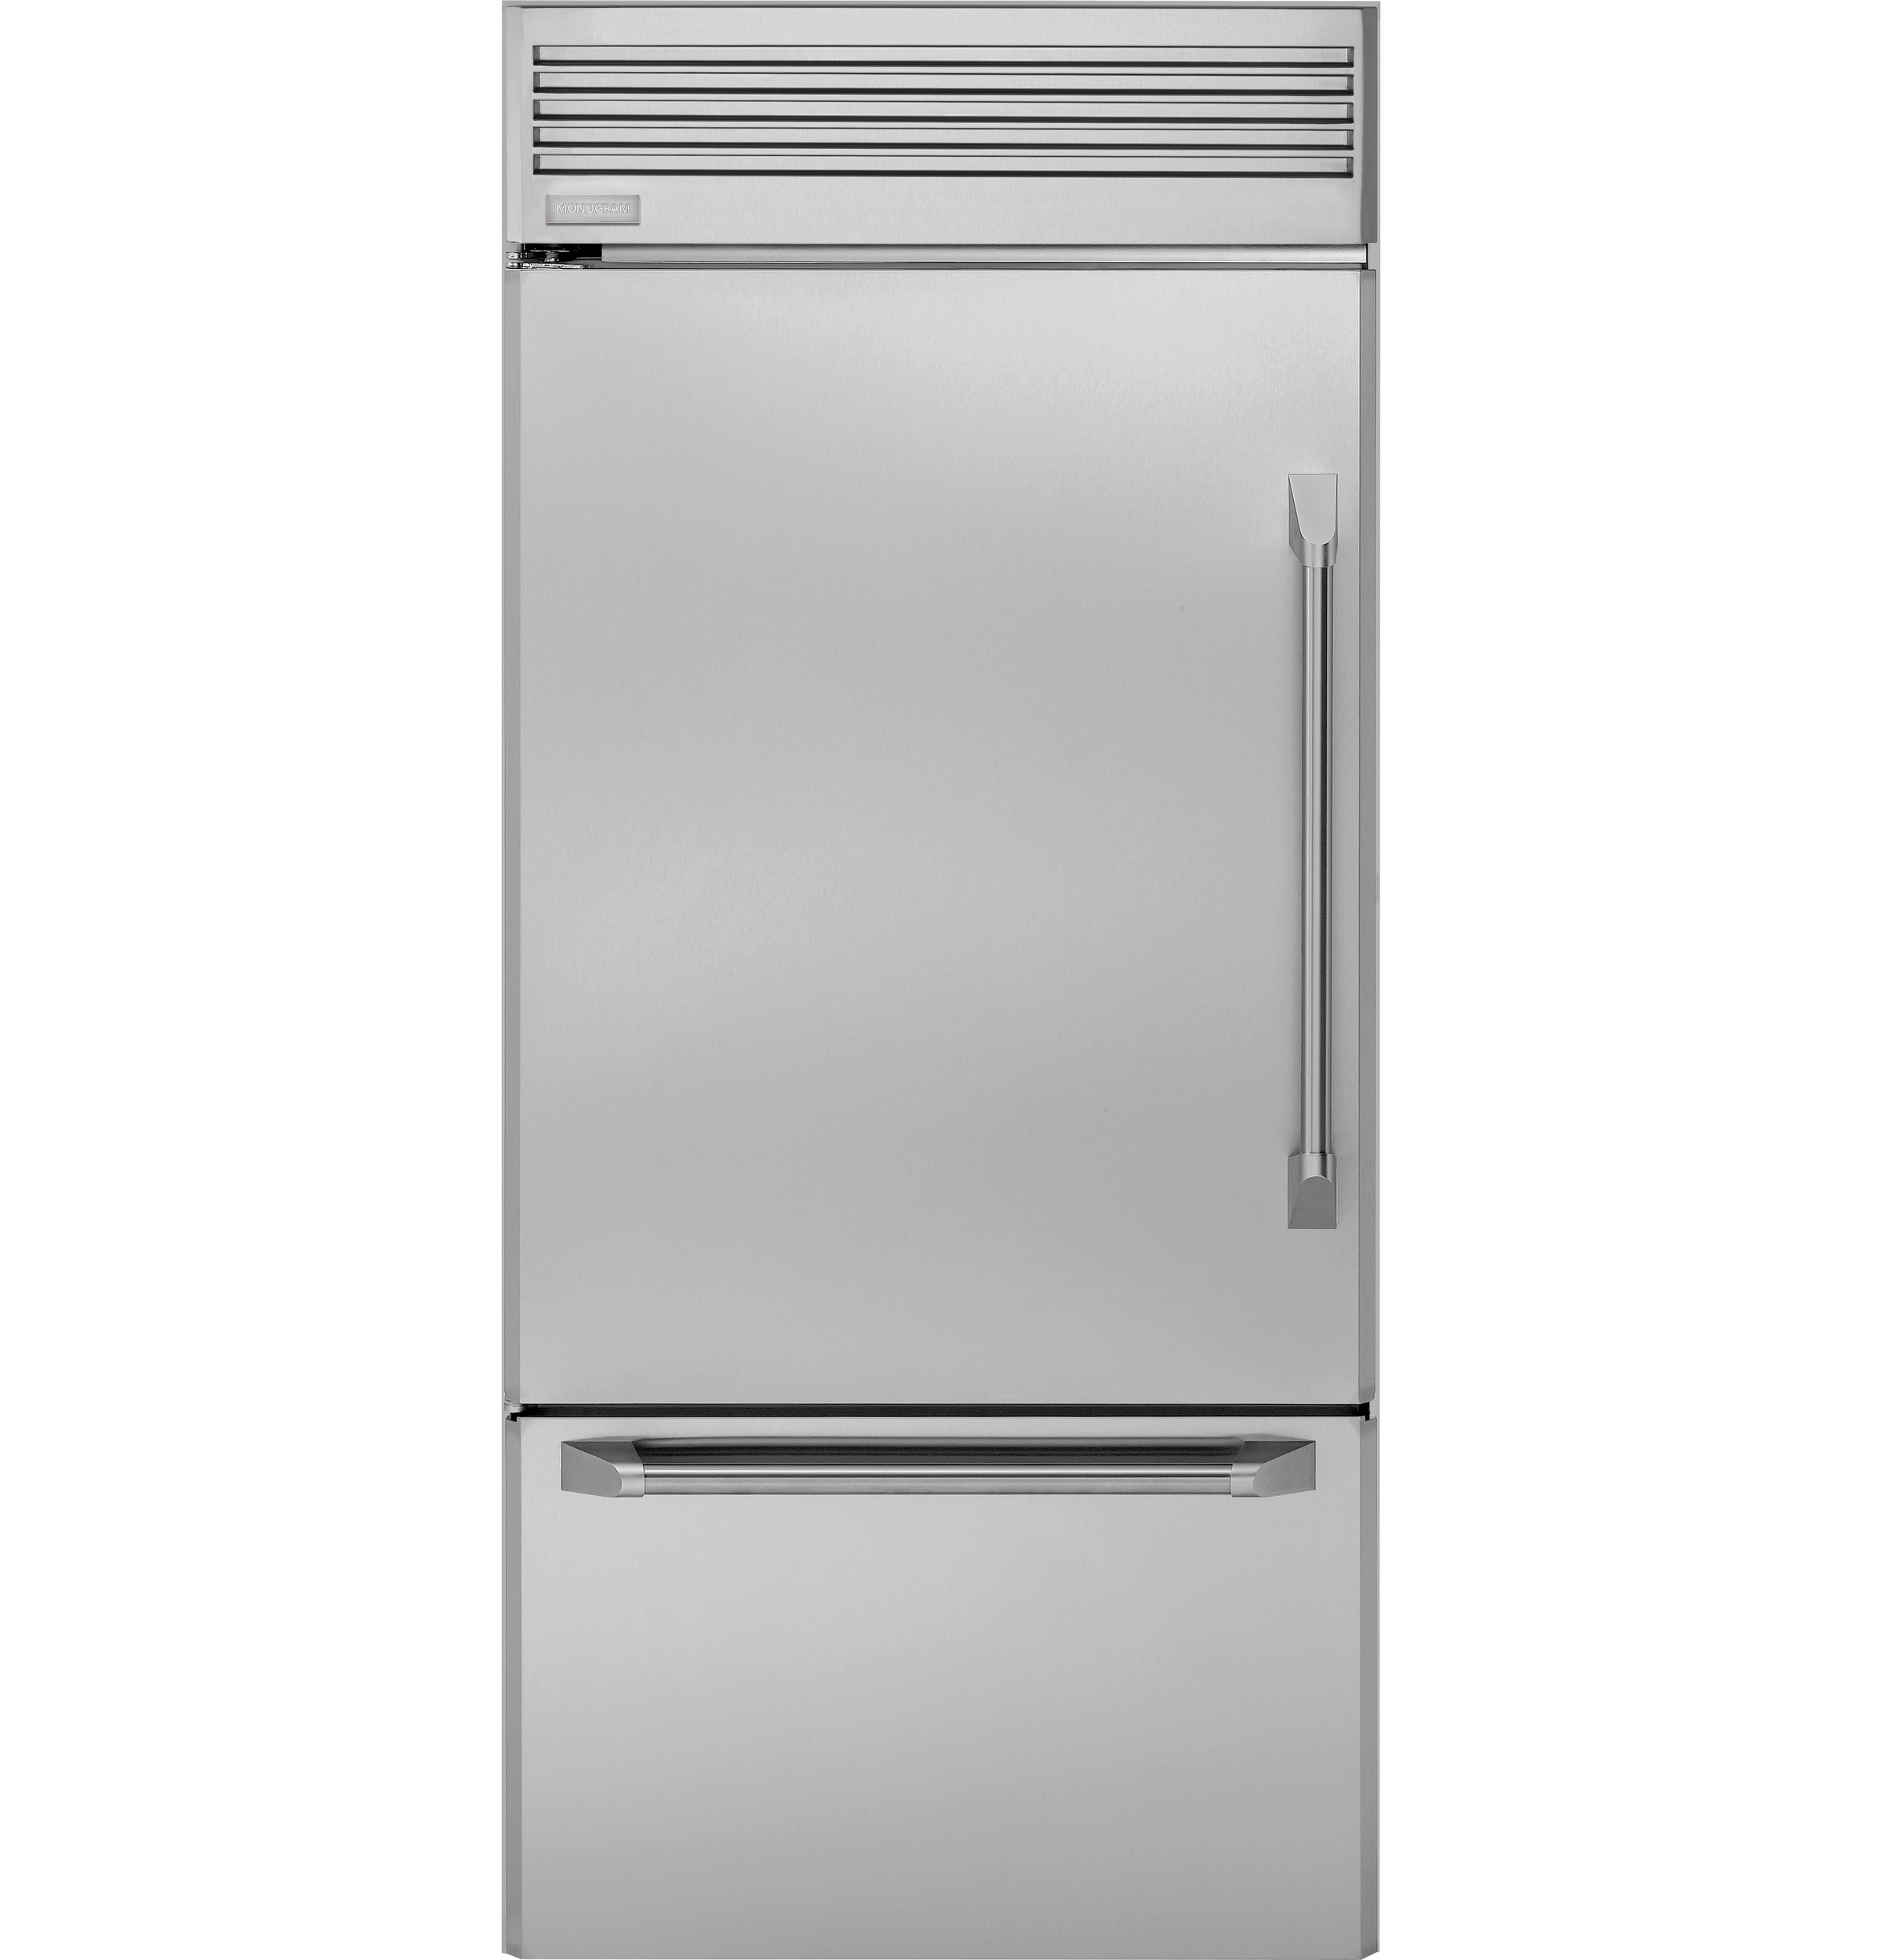 36 Refrigerators Monogram 36 Professional Built In Bottom Freezer Refrigerator